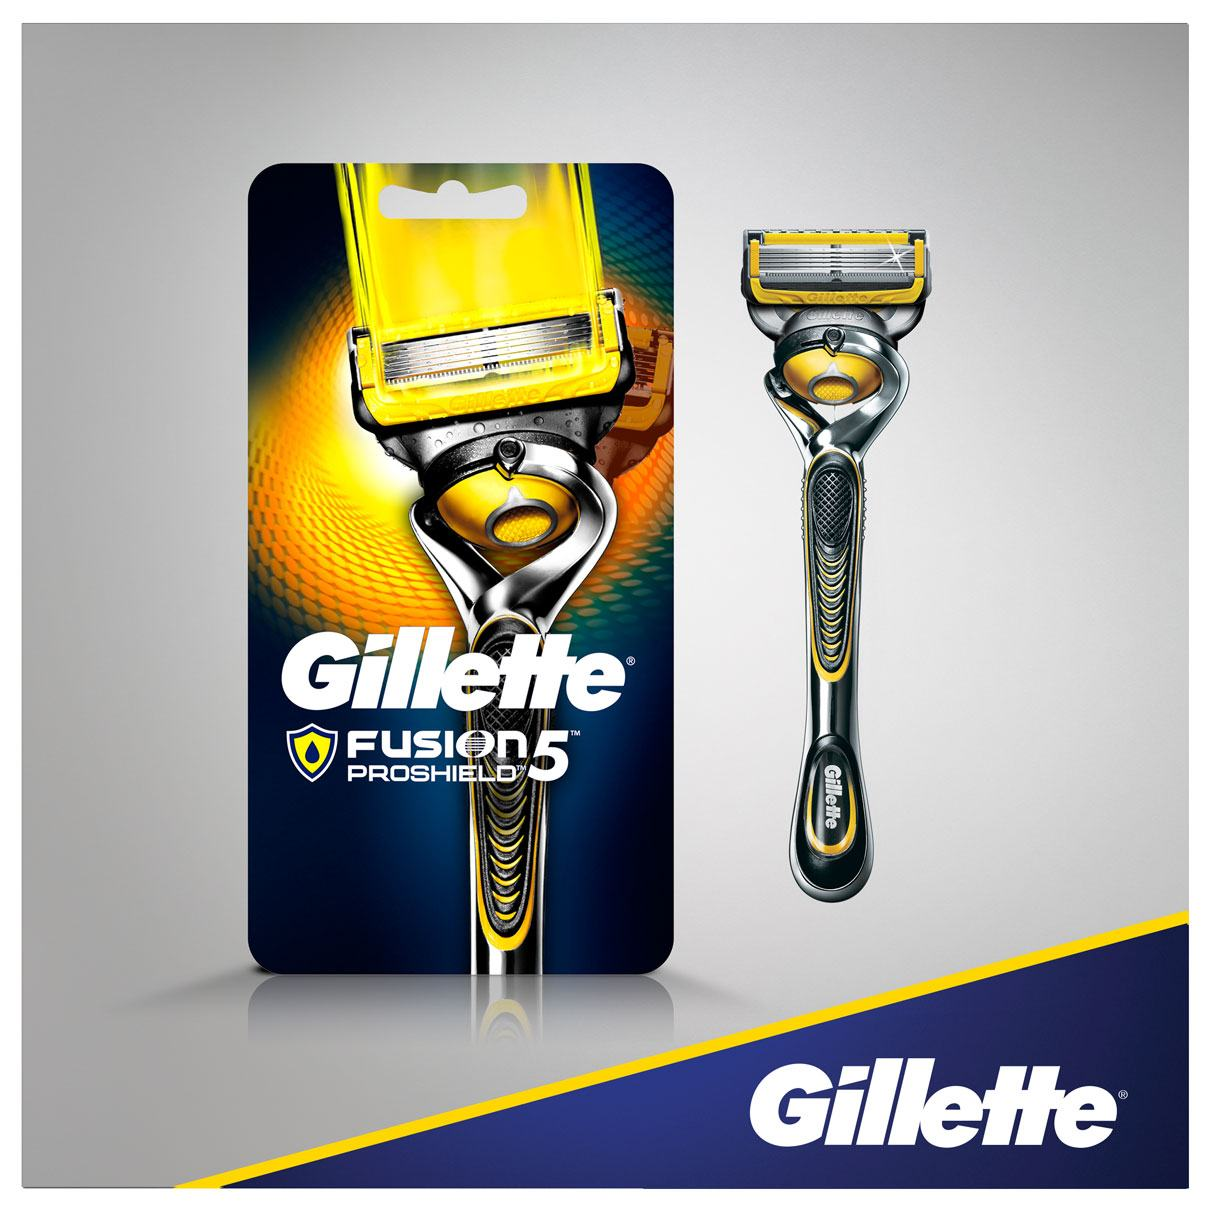 Gillette Proshield Razor